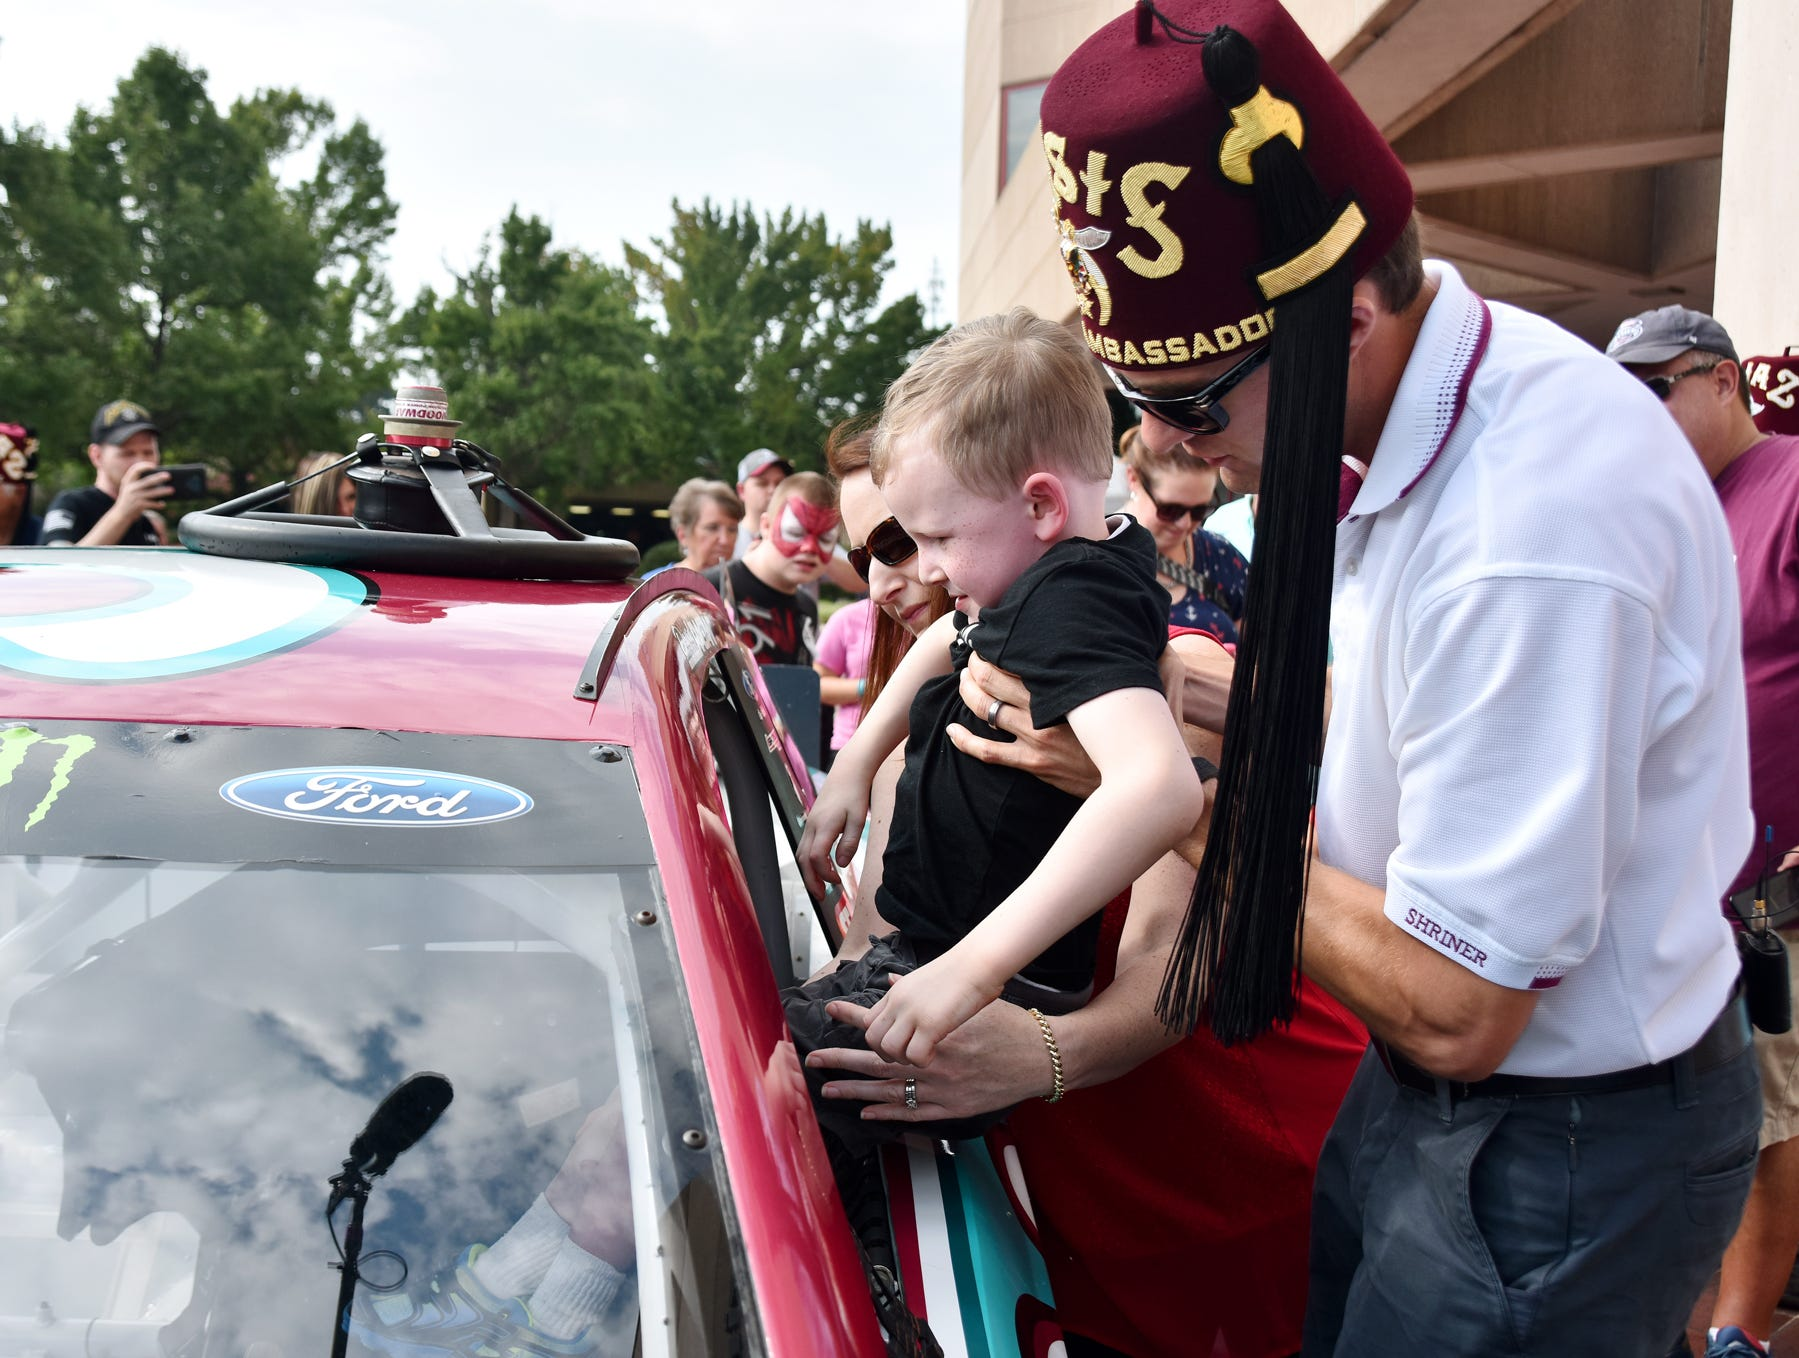 NASCAR driver David Ragan helps Wyatt Banks, 5, into a race car at the Shriners Hospital for Children in Greenville on August 15, 2018.